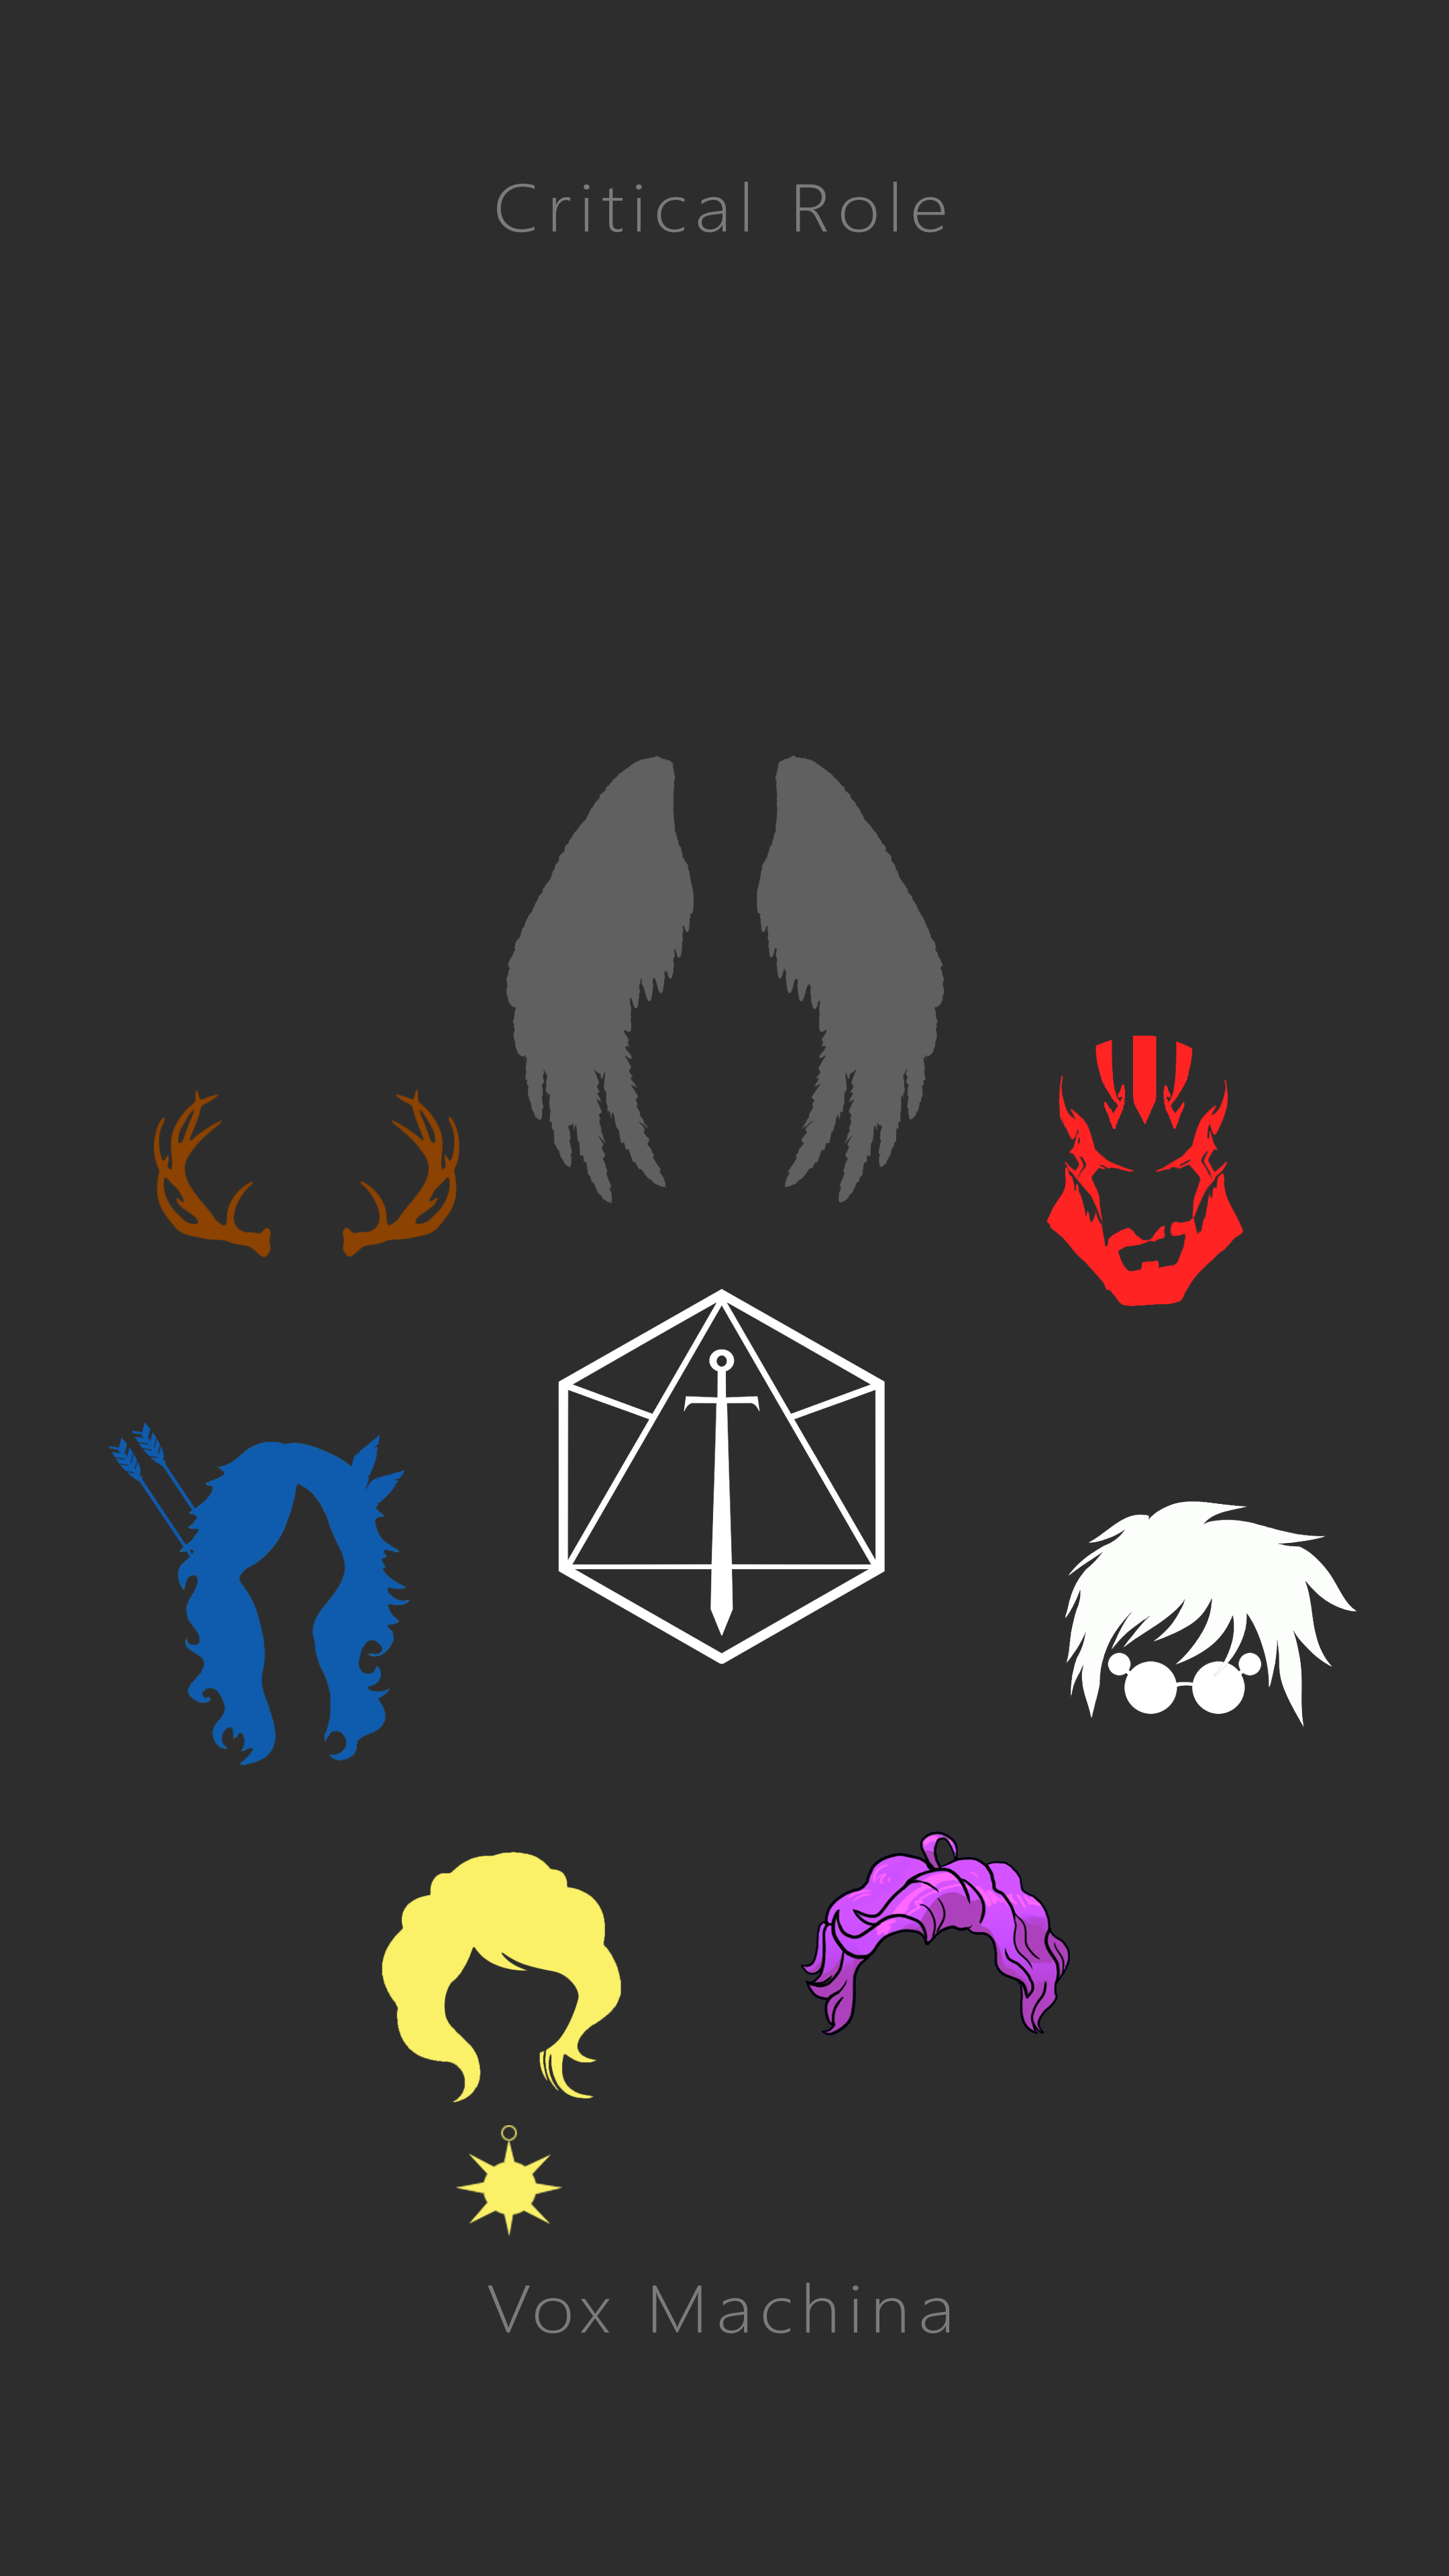 No Spoilers Vox Machina Iphone Wallpaper Critical Role